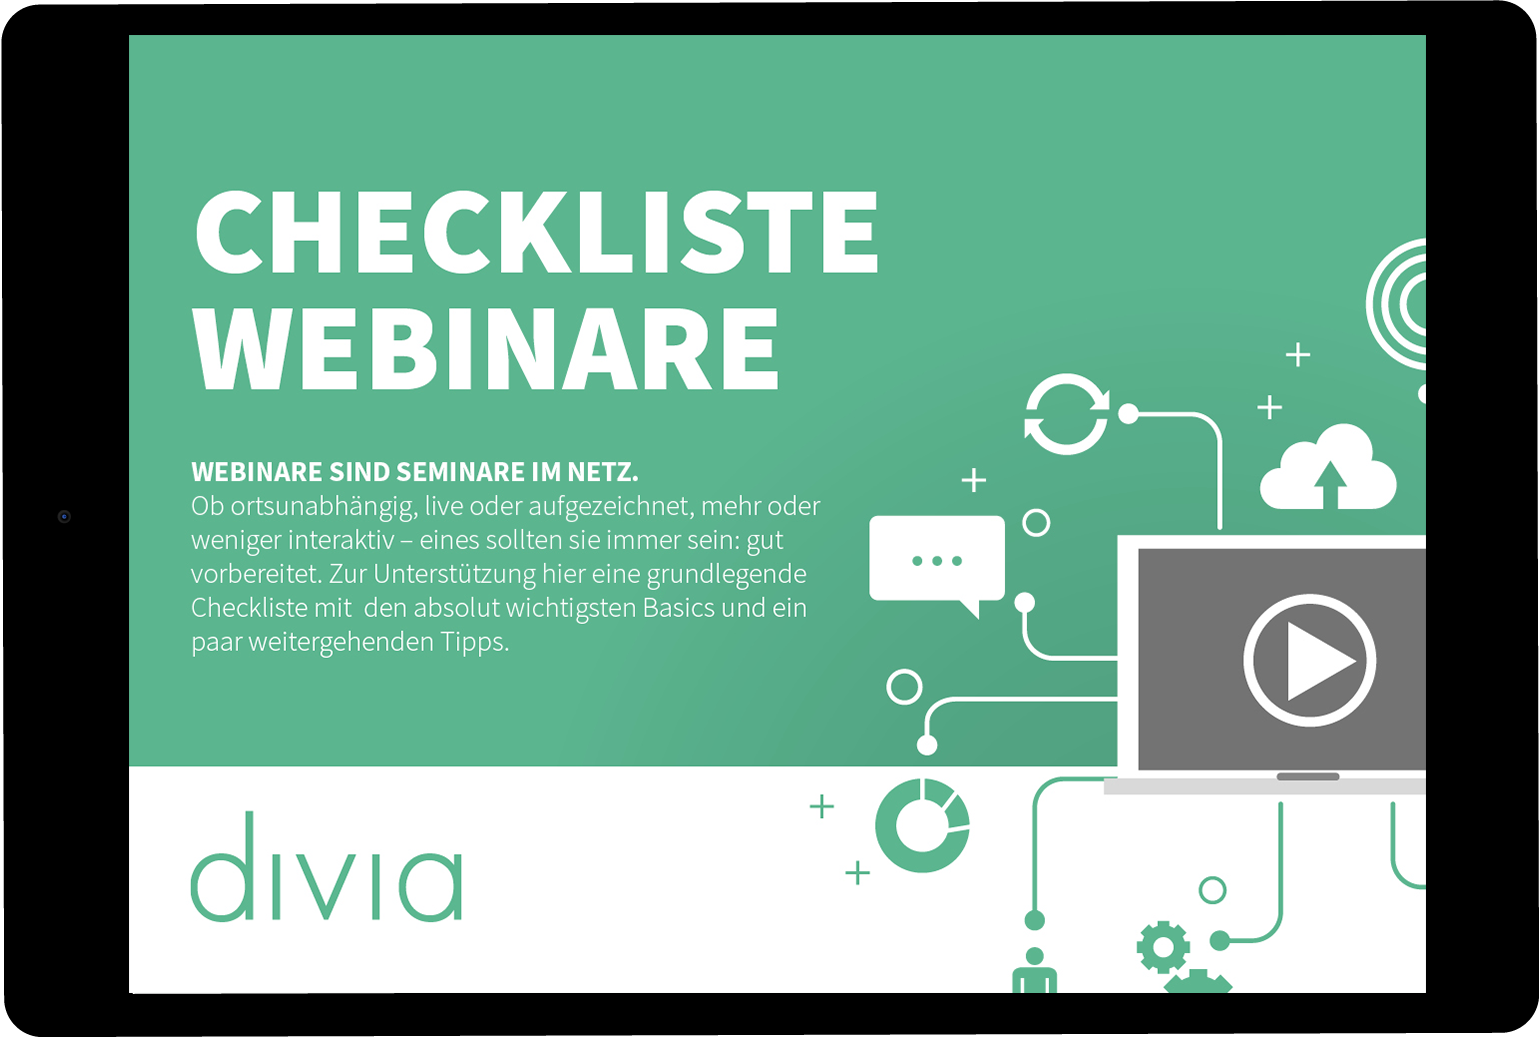 divia_Template_ipad_webinar-checkliste (1)